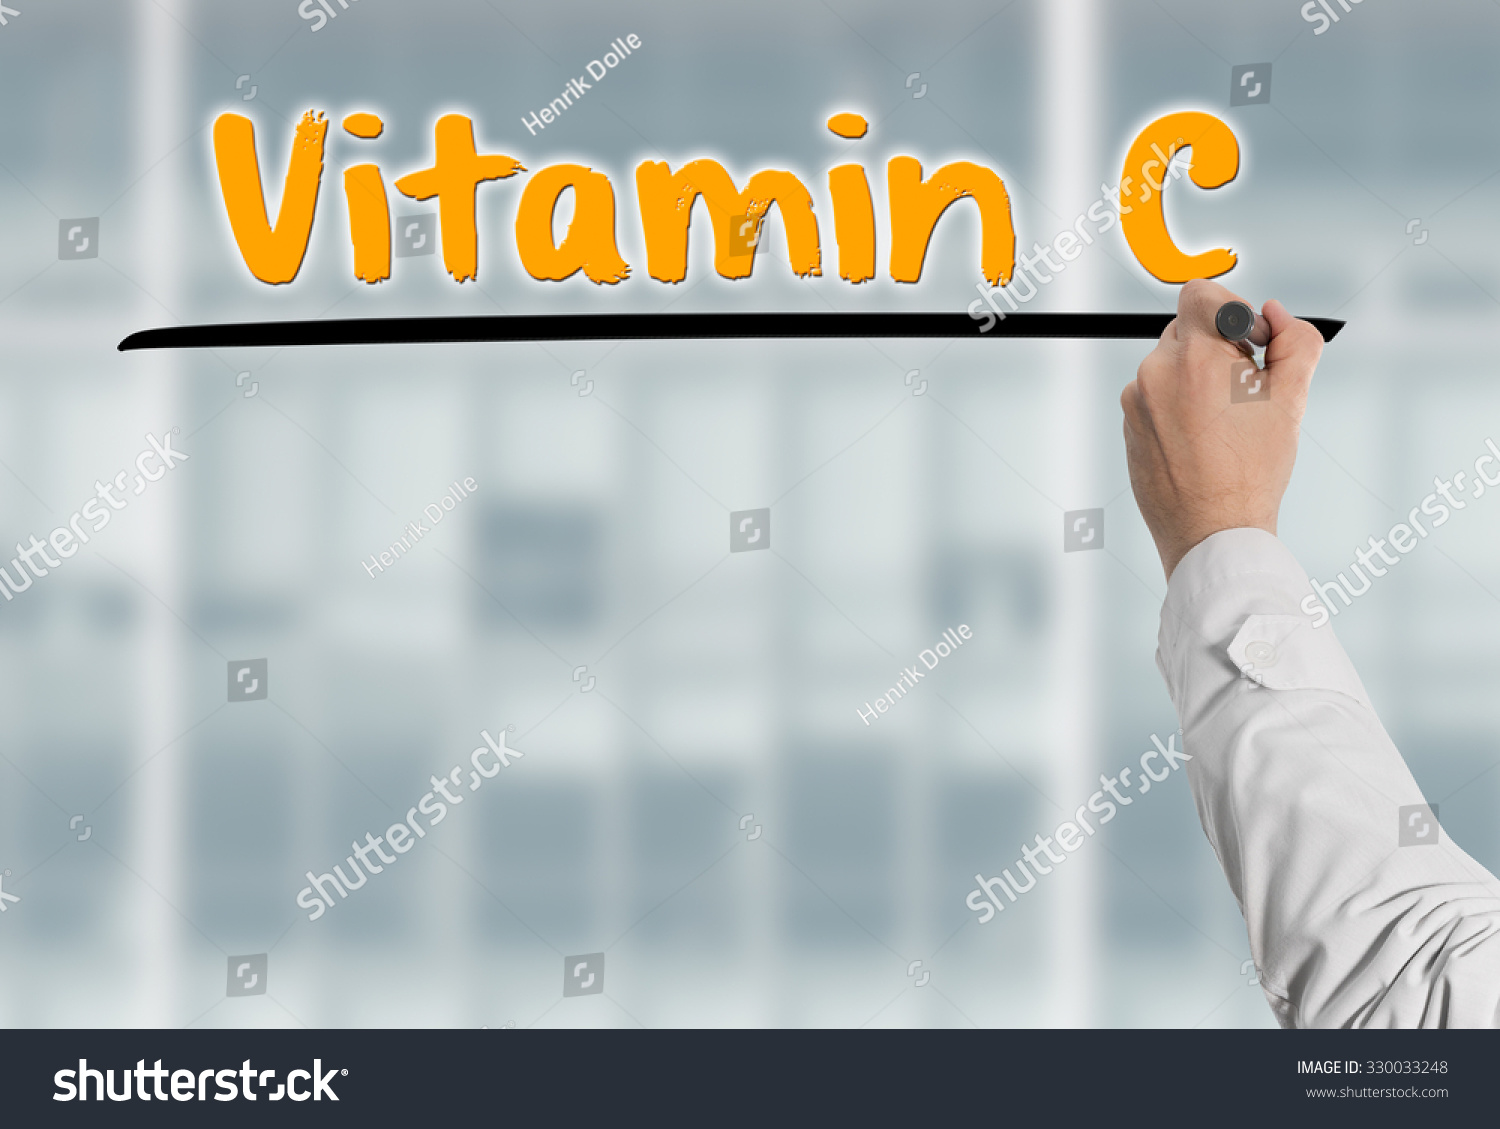 Doctor writes on a glas wall the headline Vitamin C